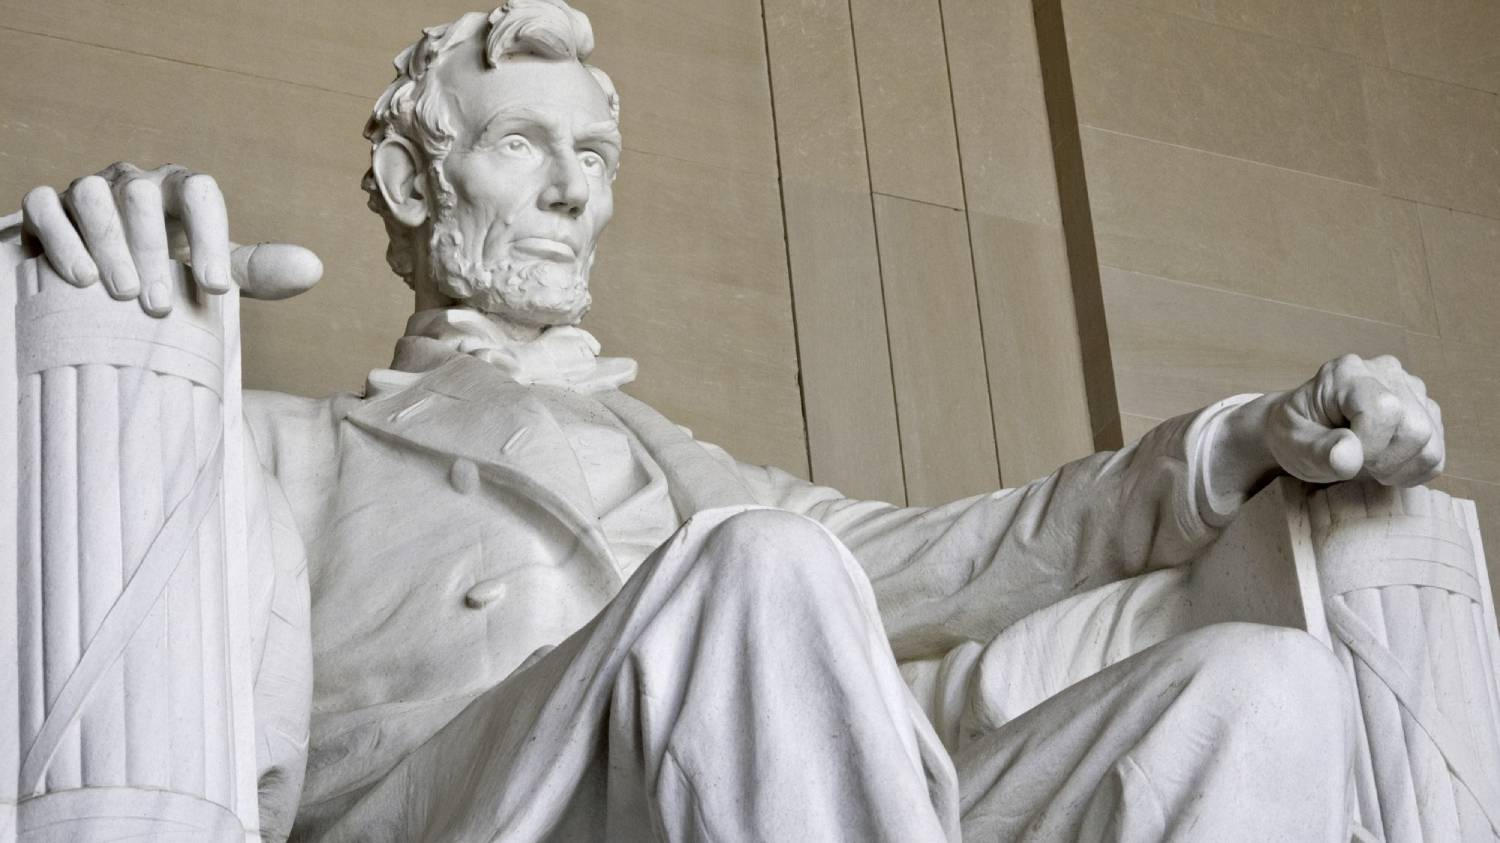 Lincoln Memorial - Things To Do In Washington, D.C.